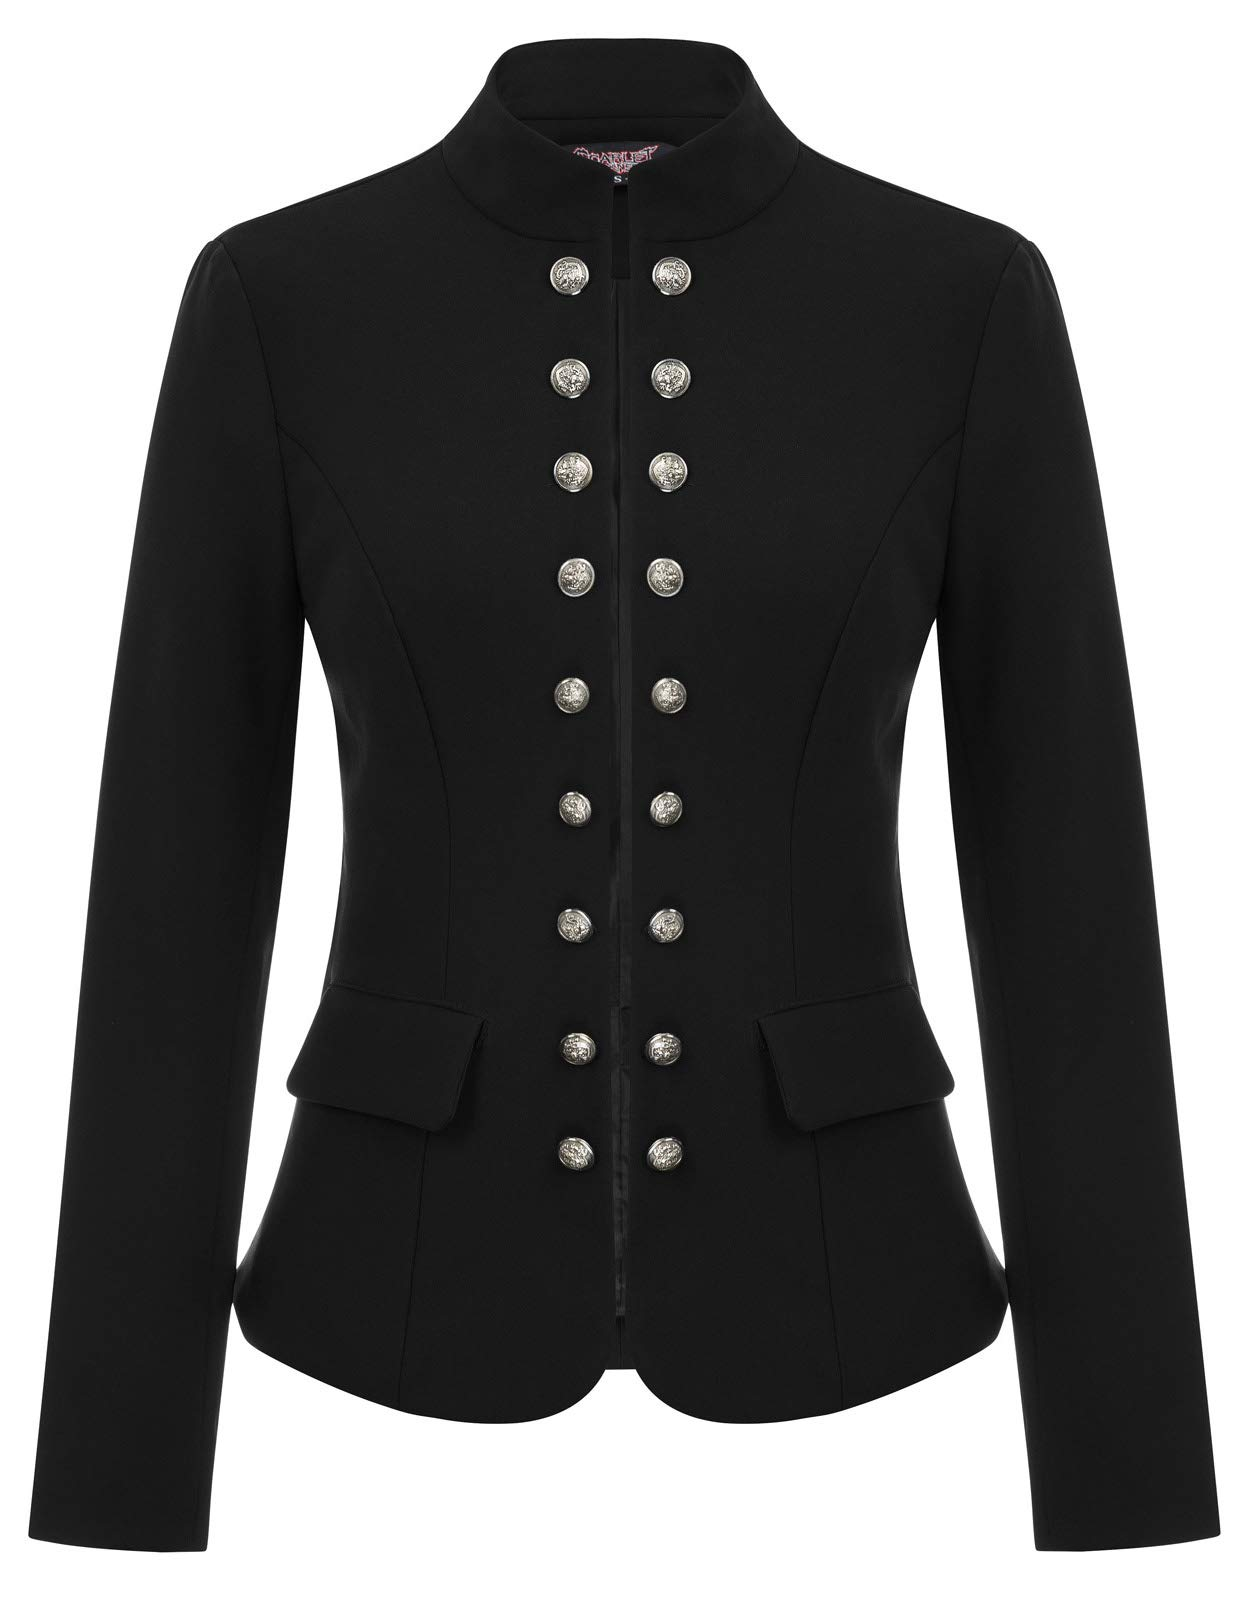 SCARLET DARKNESS Womens Black Gothic Steampunk Casual Jacket Military Coat SL35-1 M Black